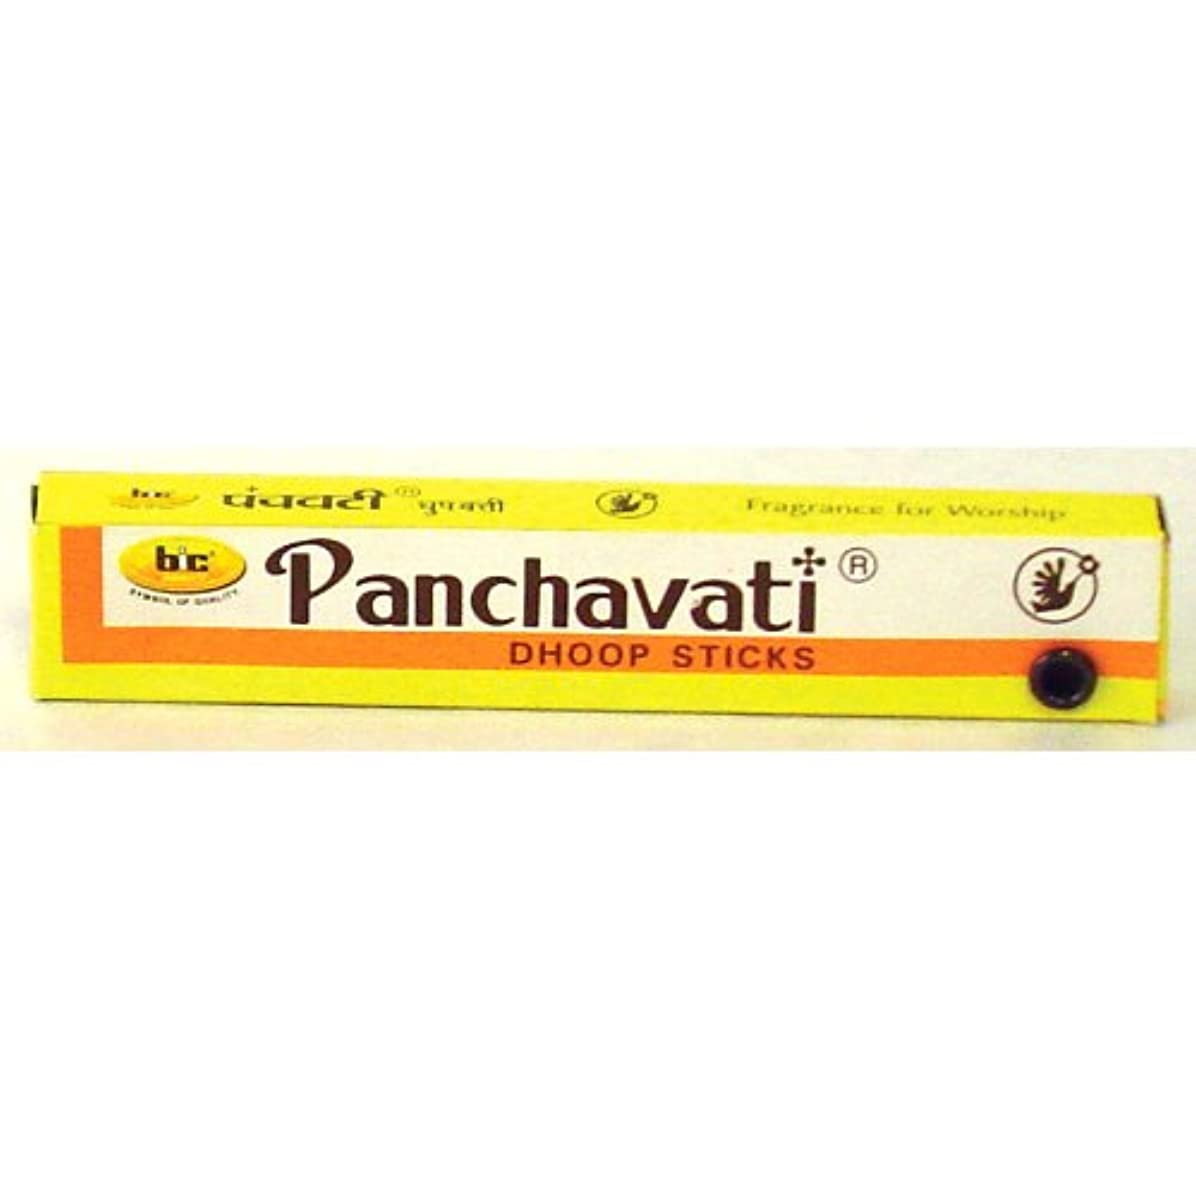 共同選択ハードリング失礼なPanchavati Dhoop Sticks - One Dozen Boxes - 5 King Size by Incense